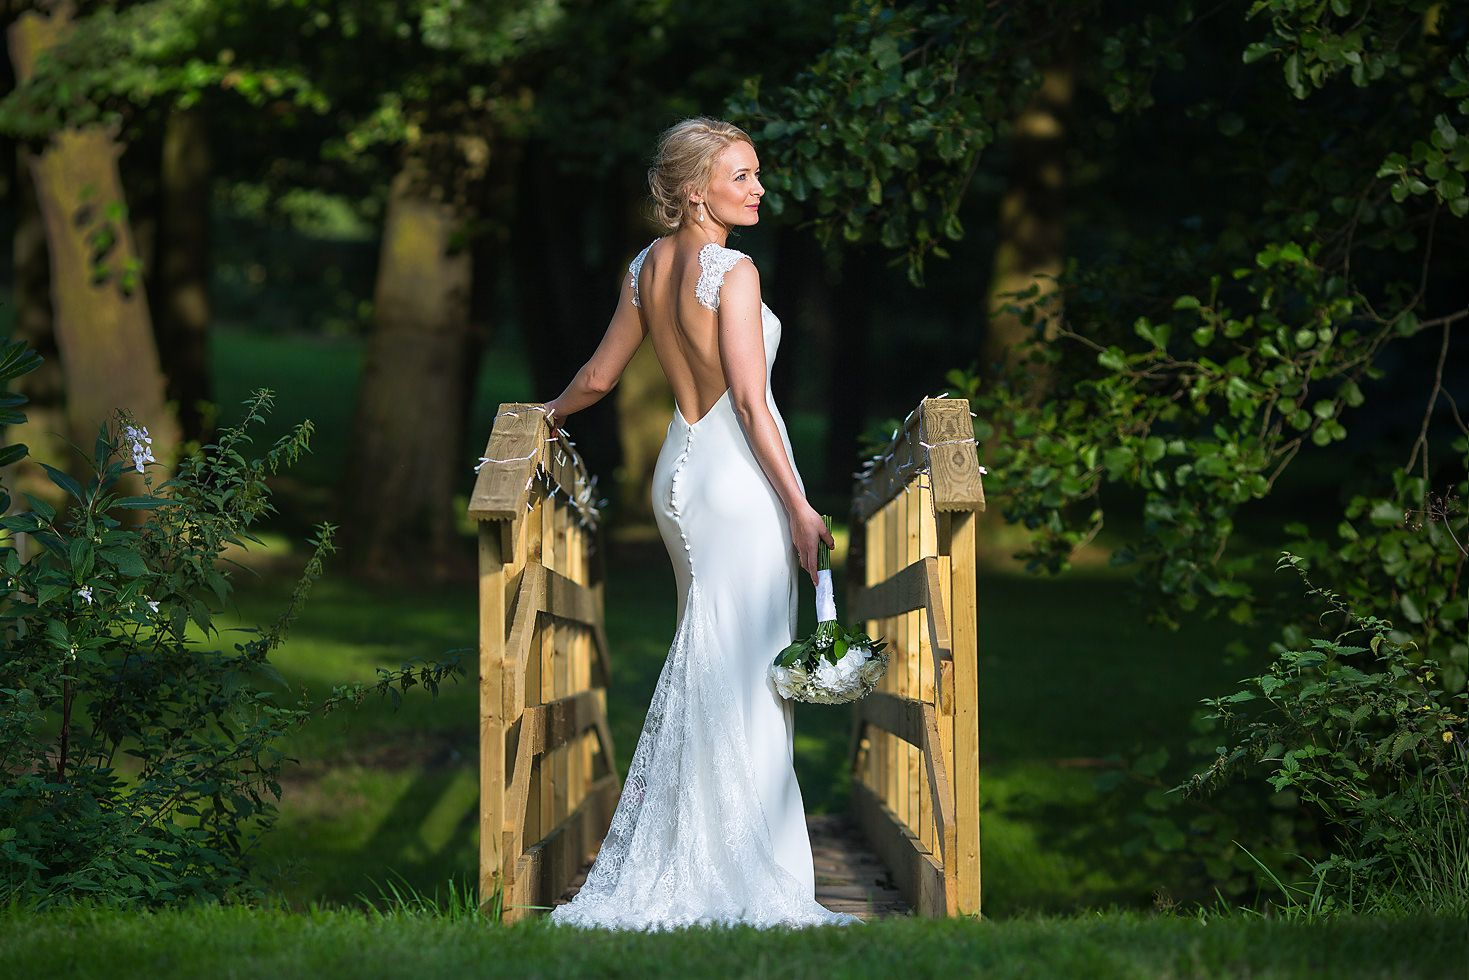 Beautiful blonde haired bride standing on a wooden bridge outdoors holding a bouquet of flowers wearing a white wedding